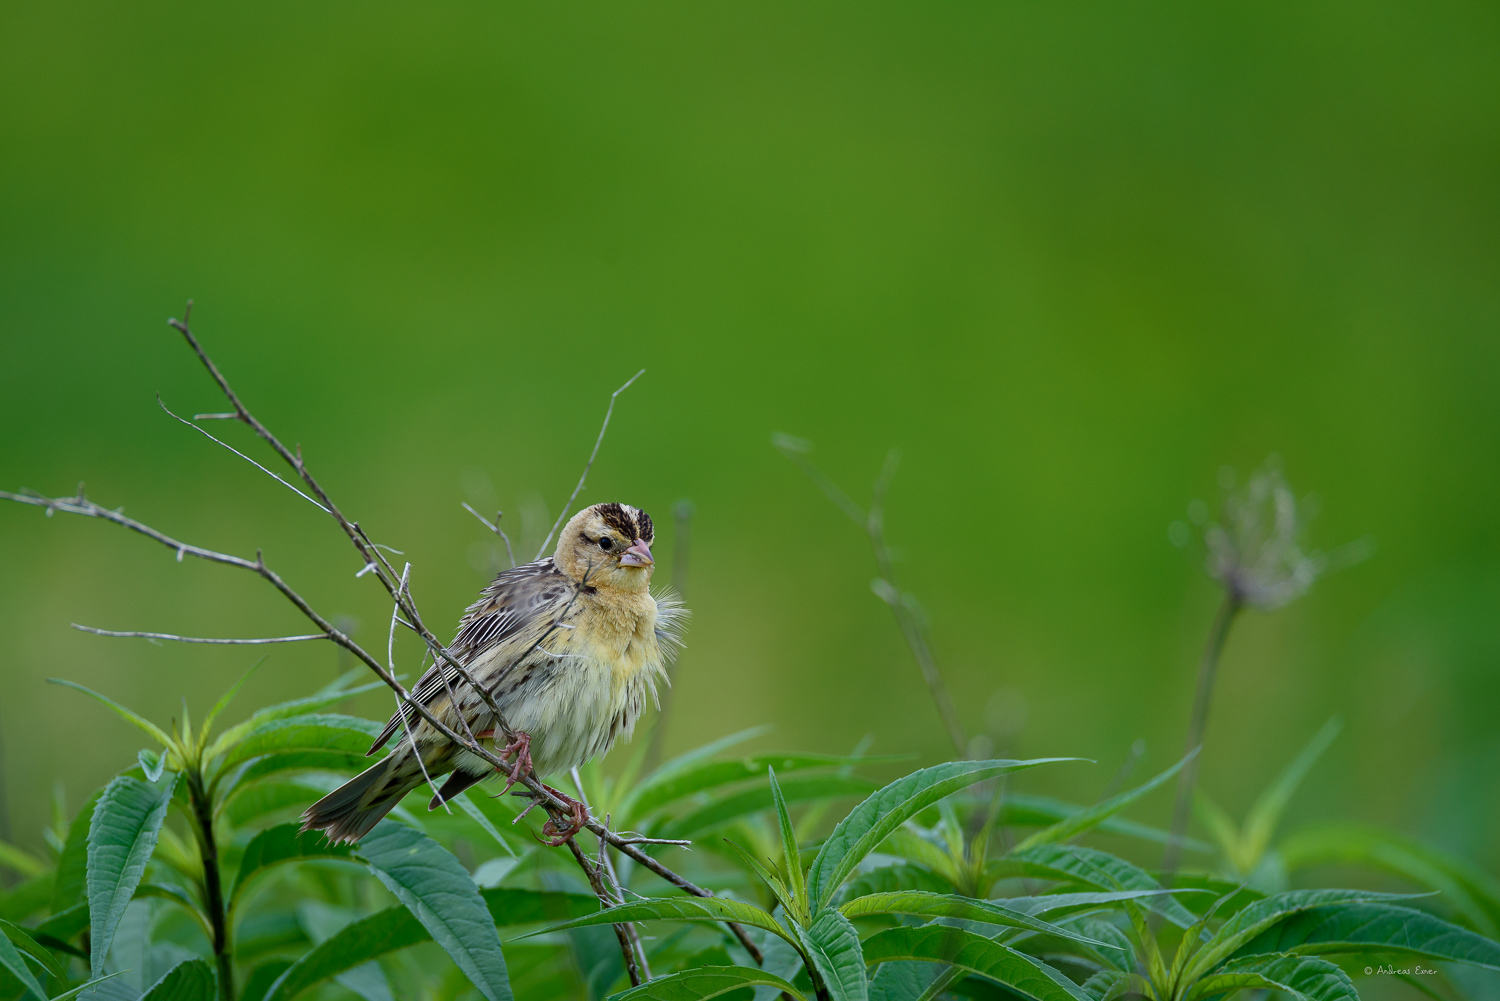 Female Bobolink. Non-breeding males look almost the same.